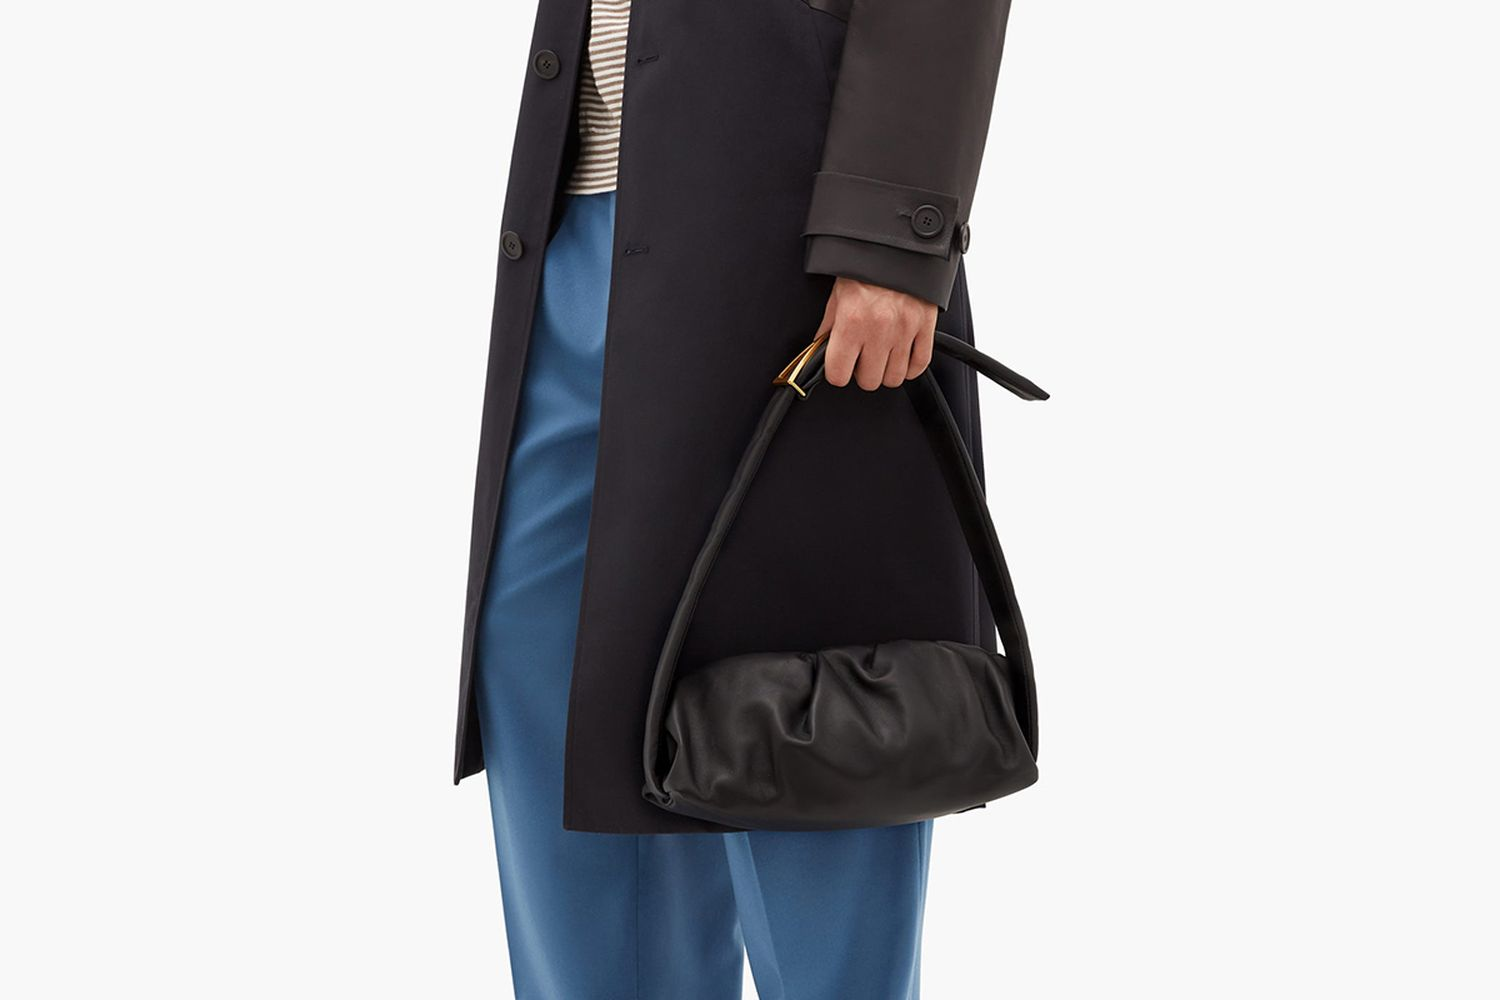 The Body Pouch Small Leather Cross-Body Bag